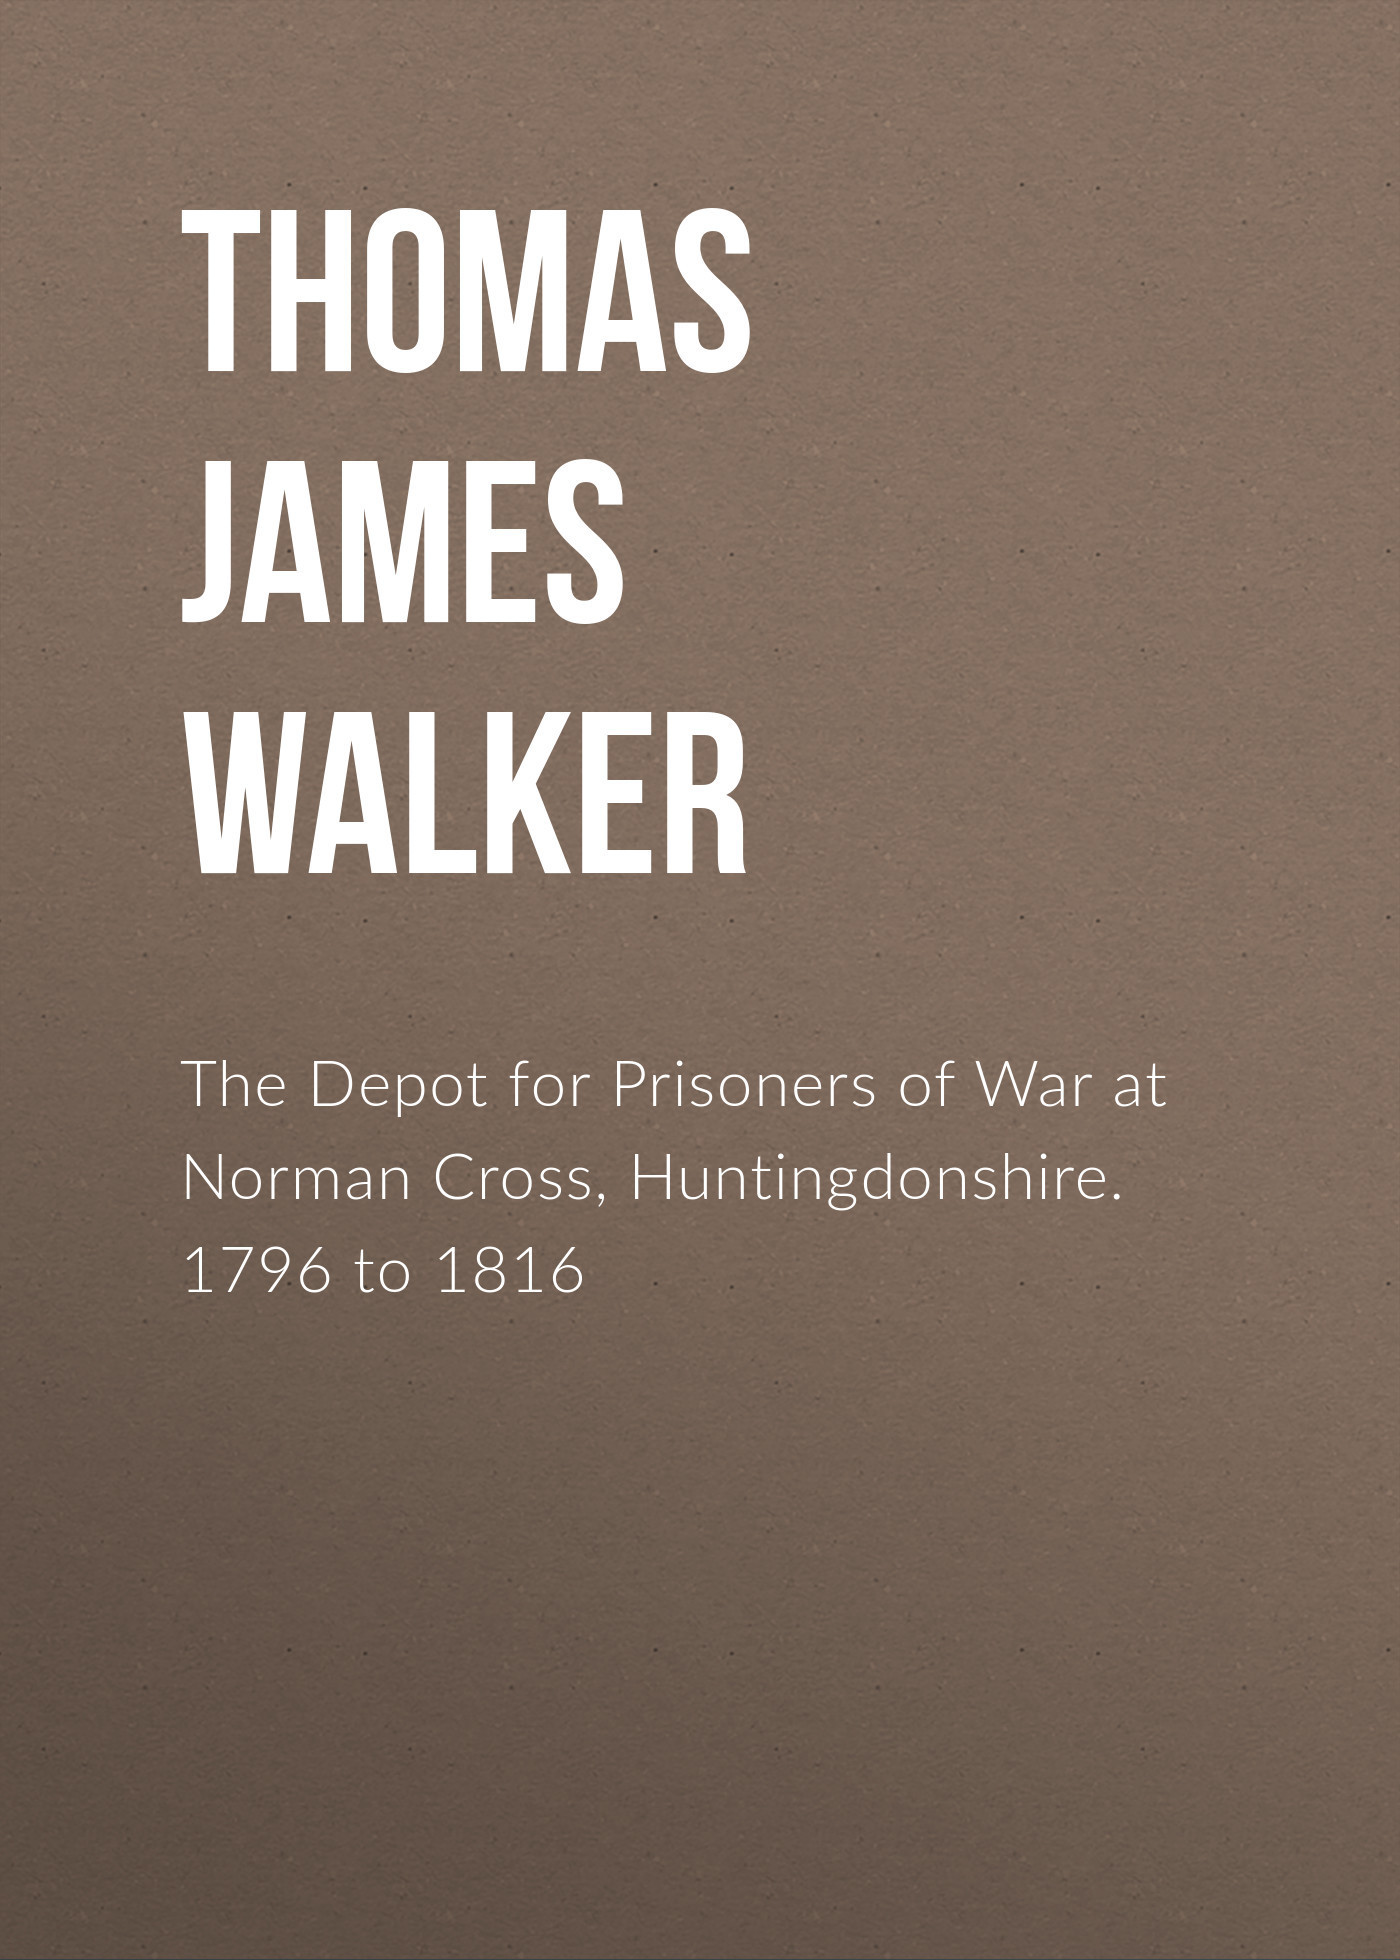 Thomas James Walker The Depot for Prisoners of War at Norman Cross, Huntingdonshire. 1796 to 1816 pair of vintage faux crystal cross shape earrings for women